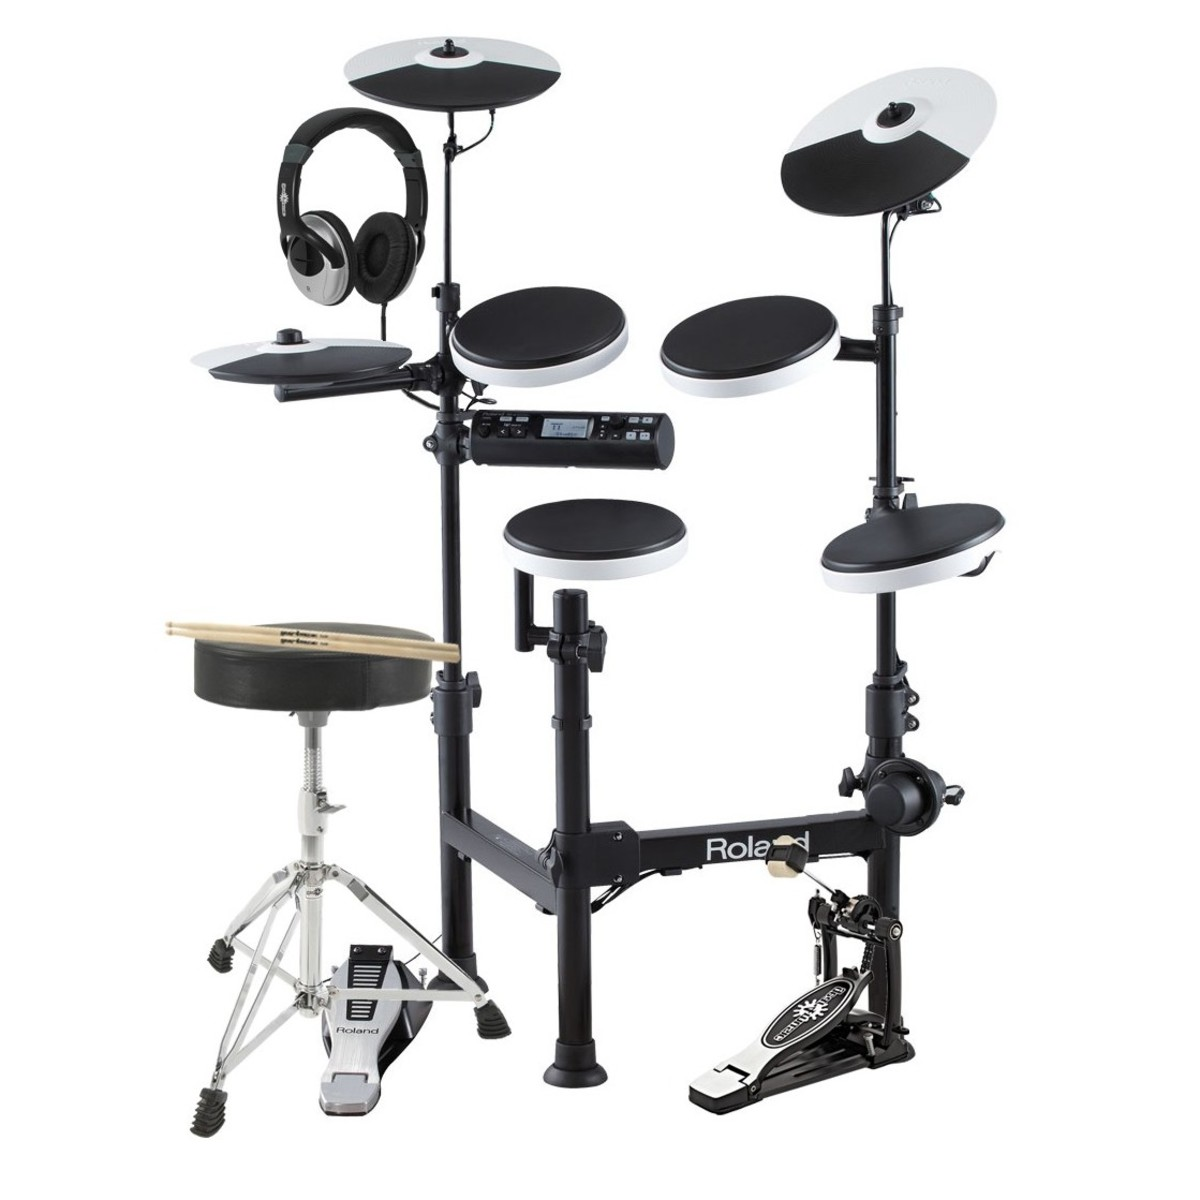 roland td 4kp v drums portable electronic drum kit with accessories at gear4music. Black Bedroom Furniture Sets. Home Design Ideas